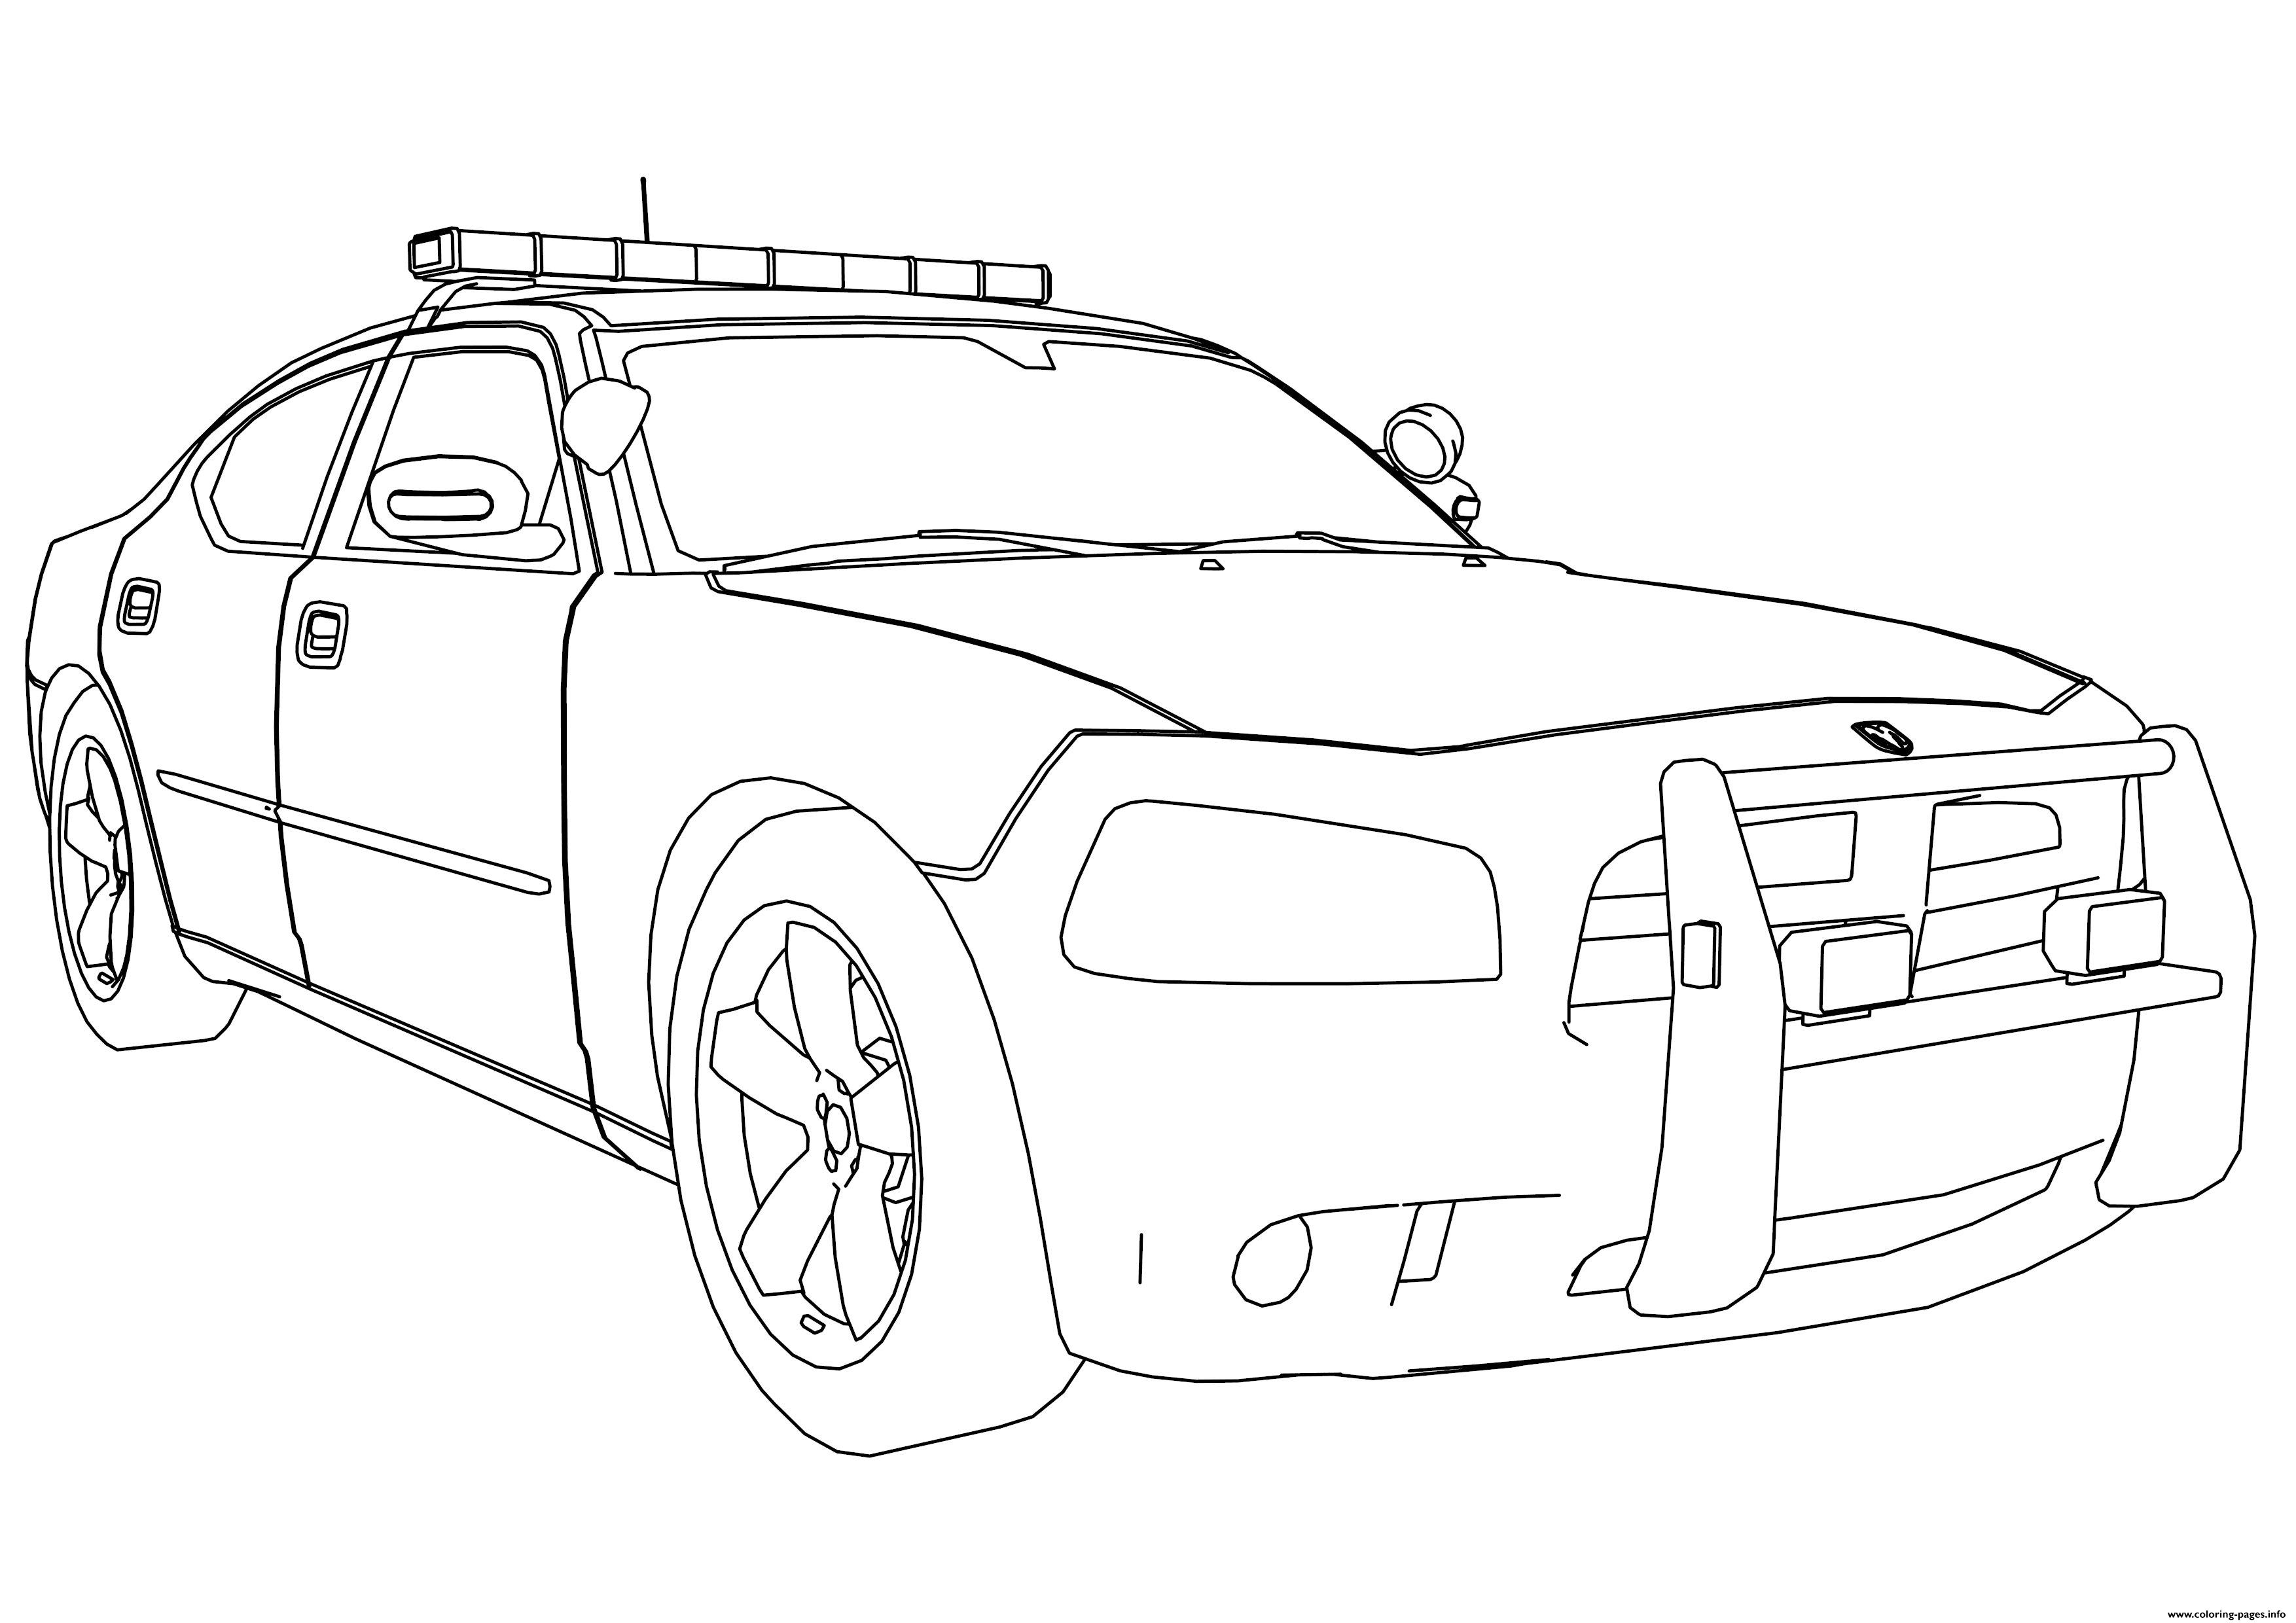 3508x2480 New Police Car Dodge Charger Coloring Pages Printable And Auto